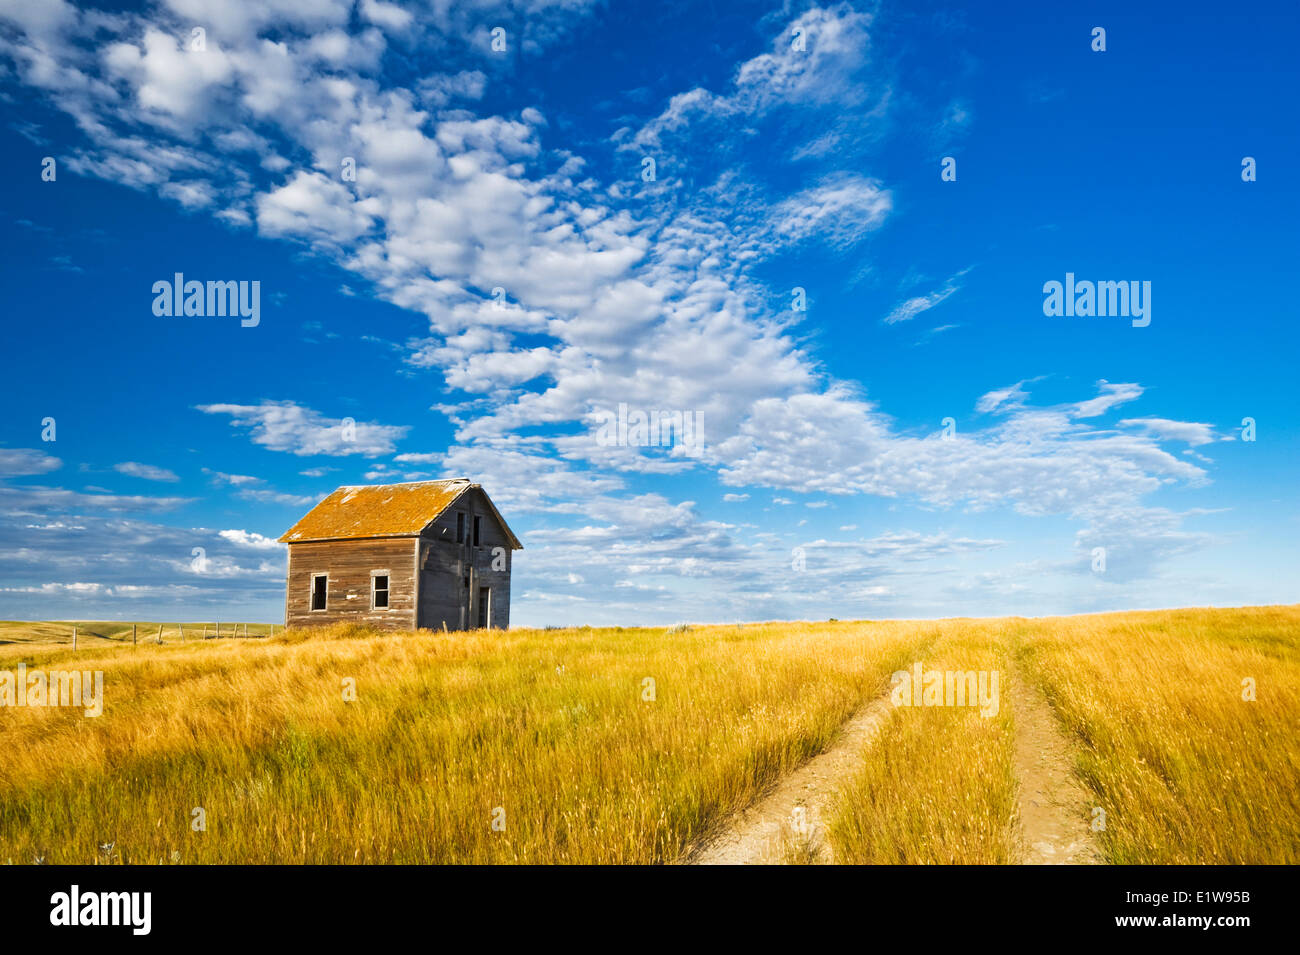 Abandoned farm house, near Admiral, Saskatchewan, Canada - Stock Image